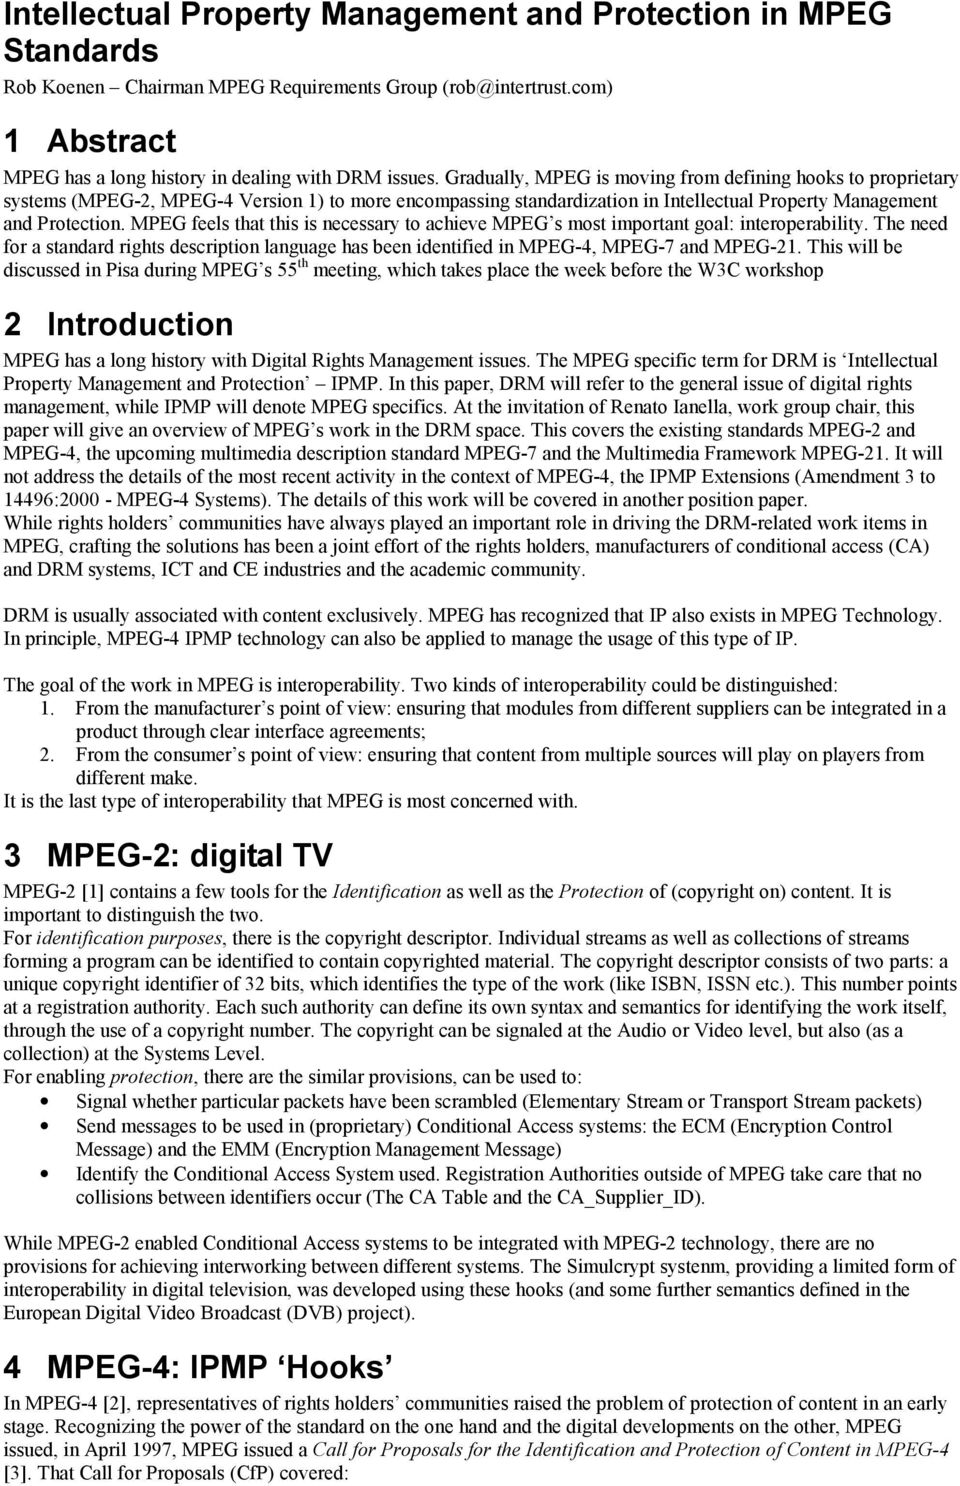 MPEG feels that this is necessary to achieve MPEG s most important goal: interoperability. The need for a standard rights description language has been identified in MPEG-4, MPEG-7 and MPEG-21.